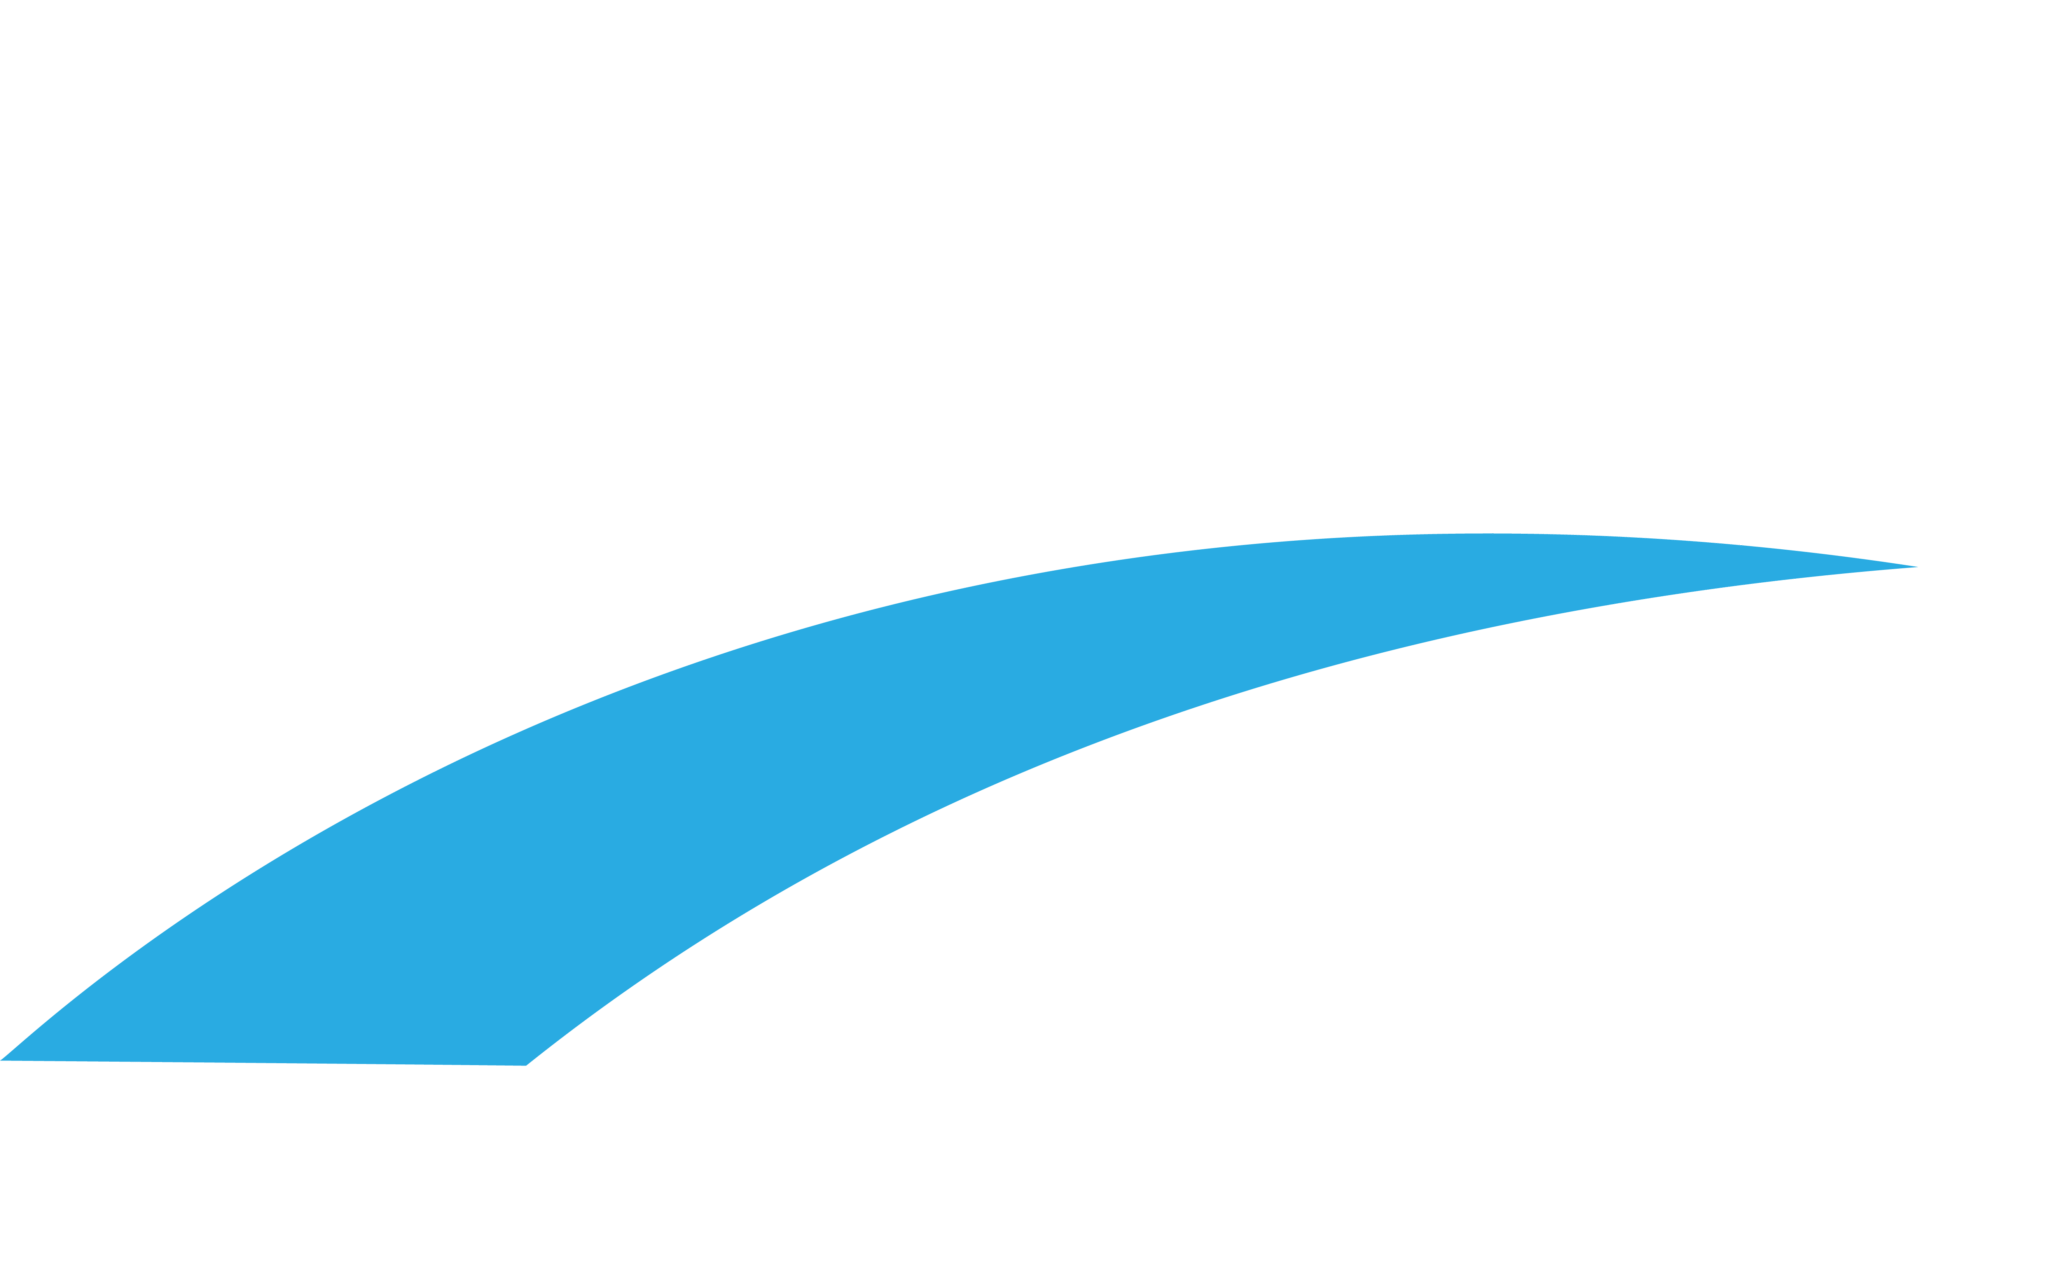 EMC Building Maintenance